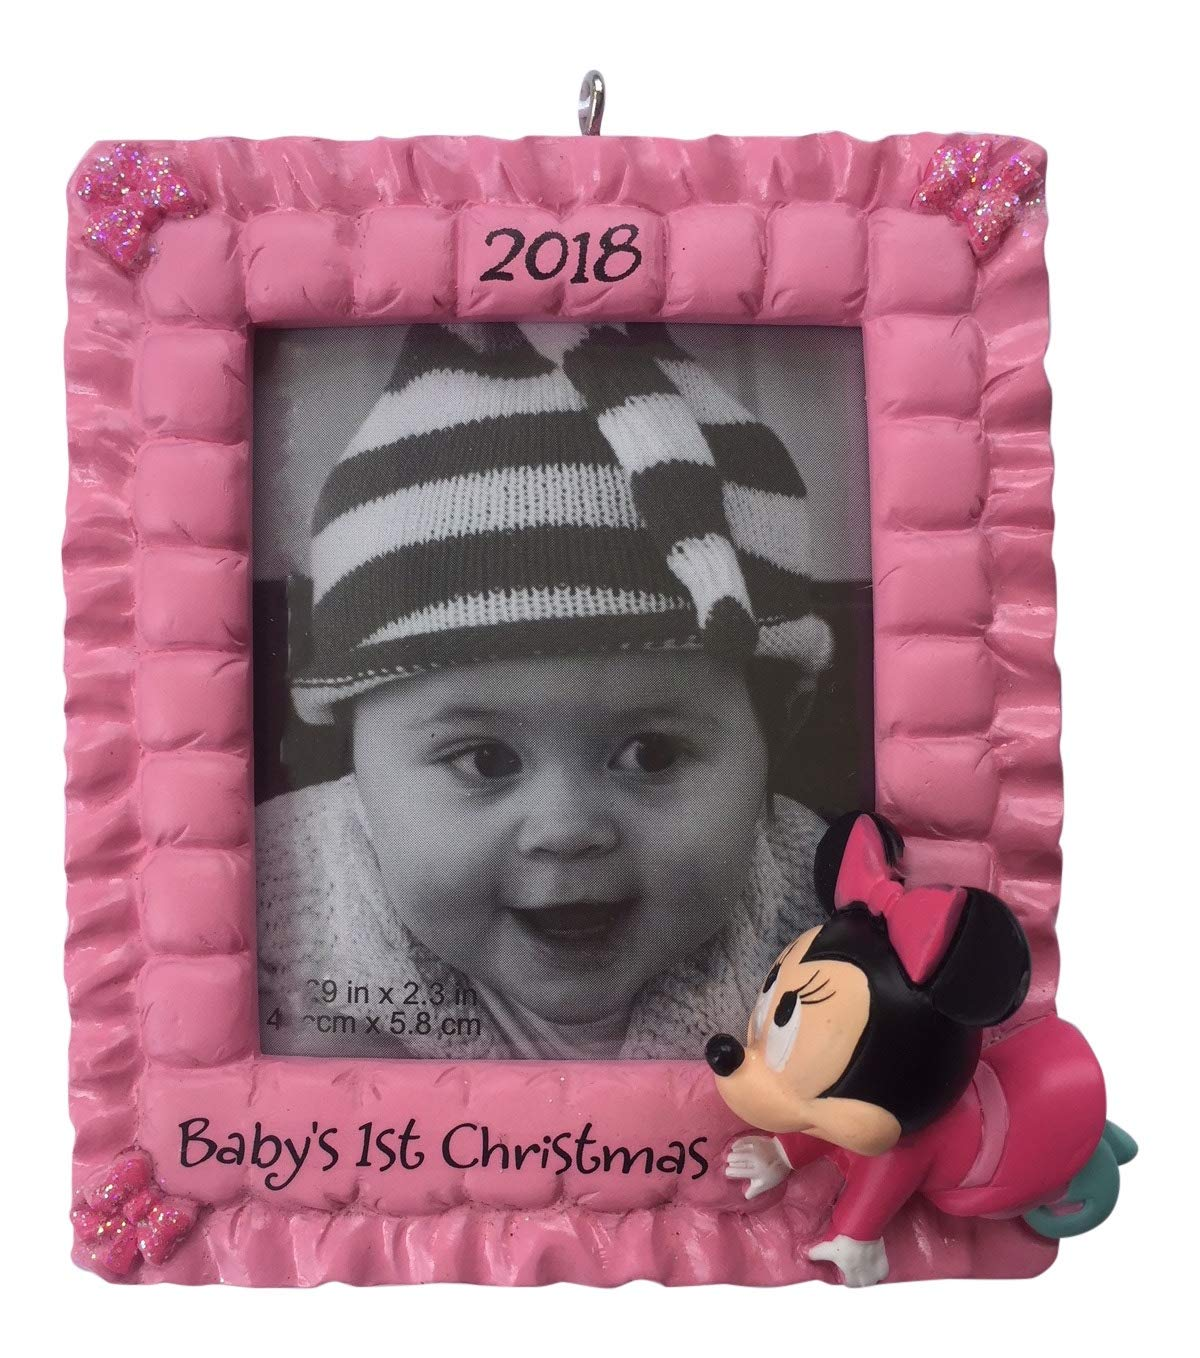 Hallmark 2018 Disney Minnie Mouse Baby's 1st Christmas Frame Ornament